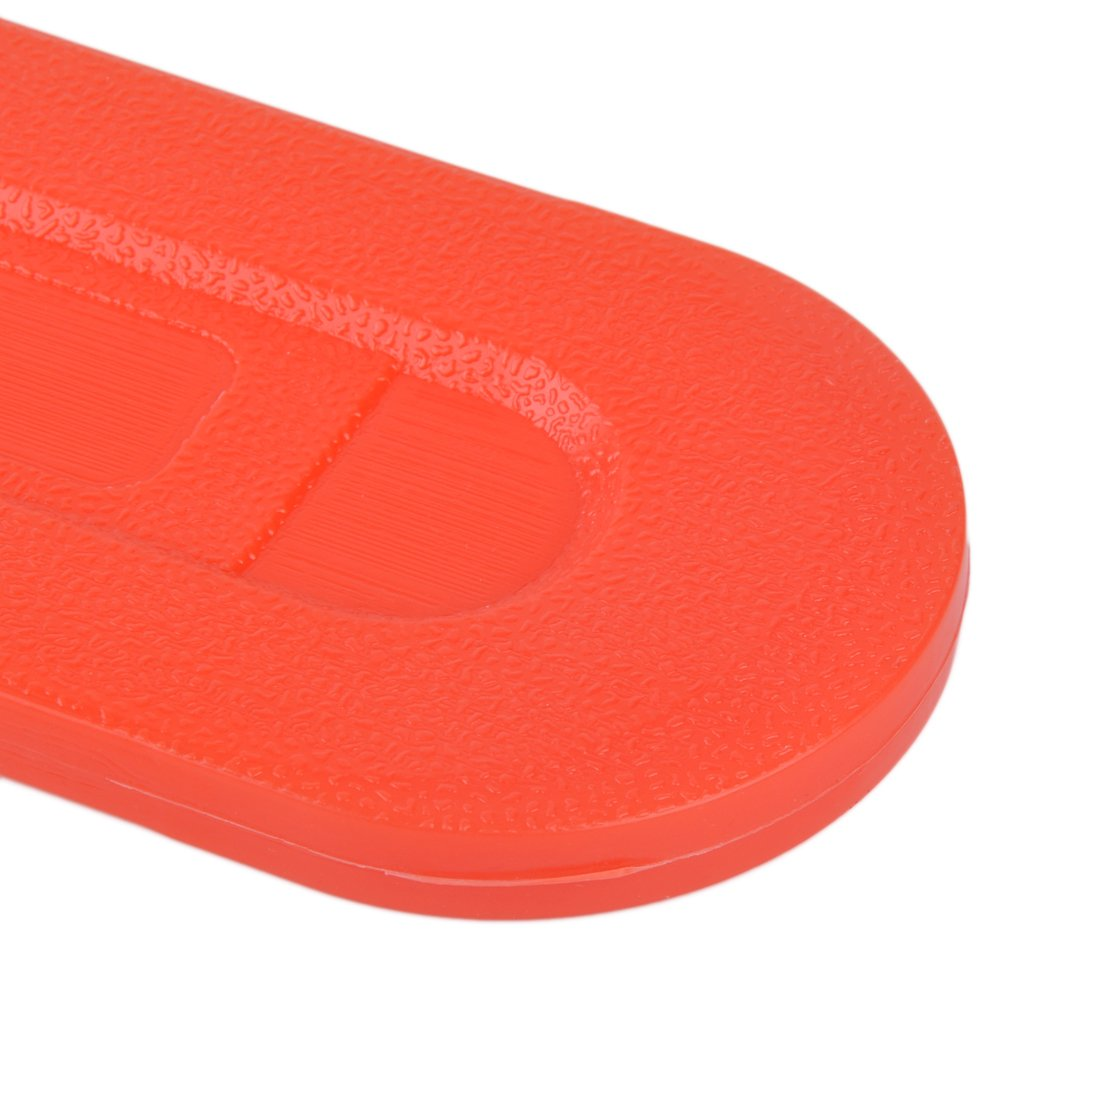 Chainsaw Scabbard Bar Cover Protector Guide Plate Replacement for 12 14 16 18 20-Red